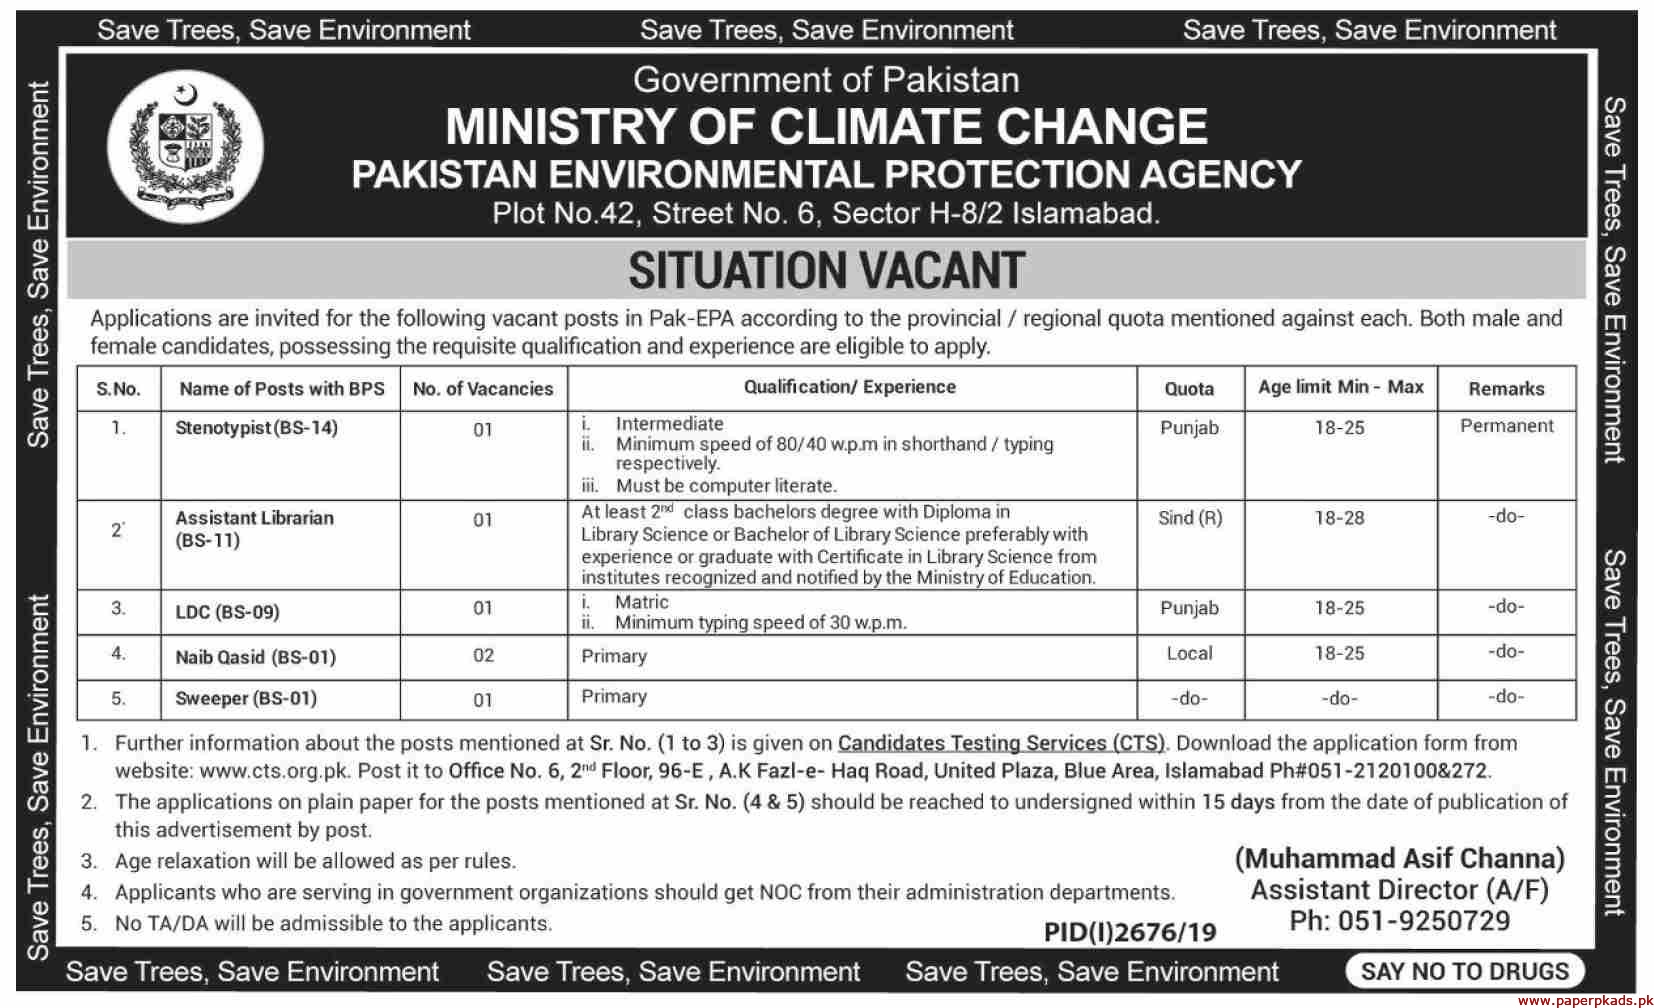 Government of Pakistan Ministry of Climate Change Jobs 2019 Latest